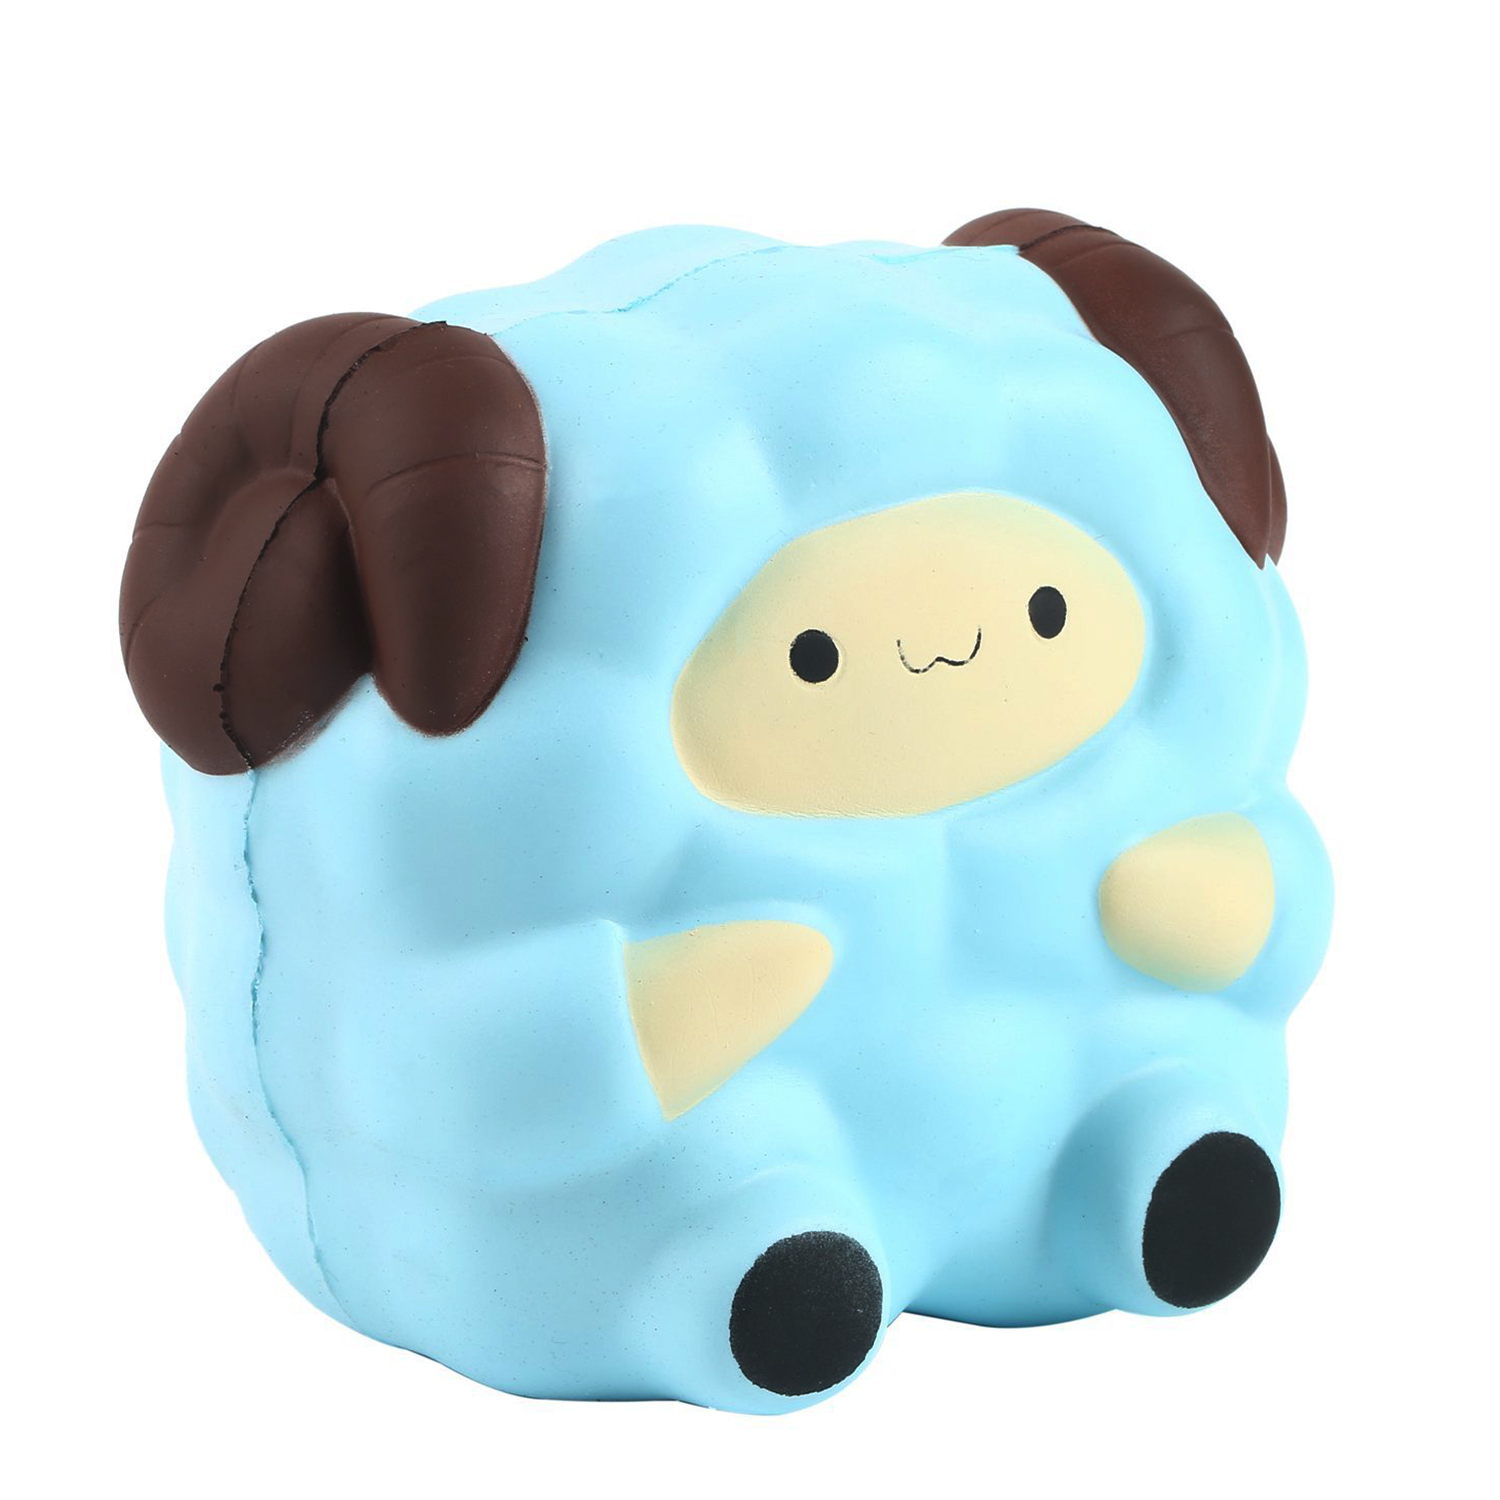 Cute Squishy Sheep Cream Scented Slow Rising Stress Relief Kids Squeeze Toy blue